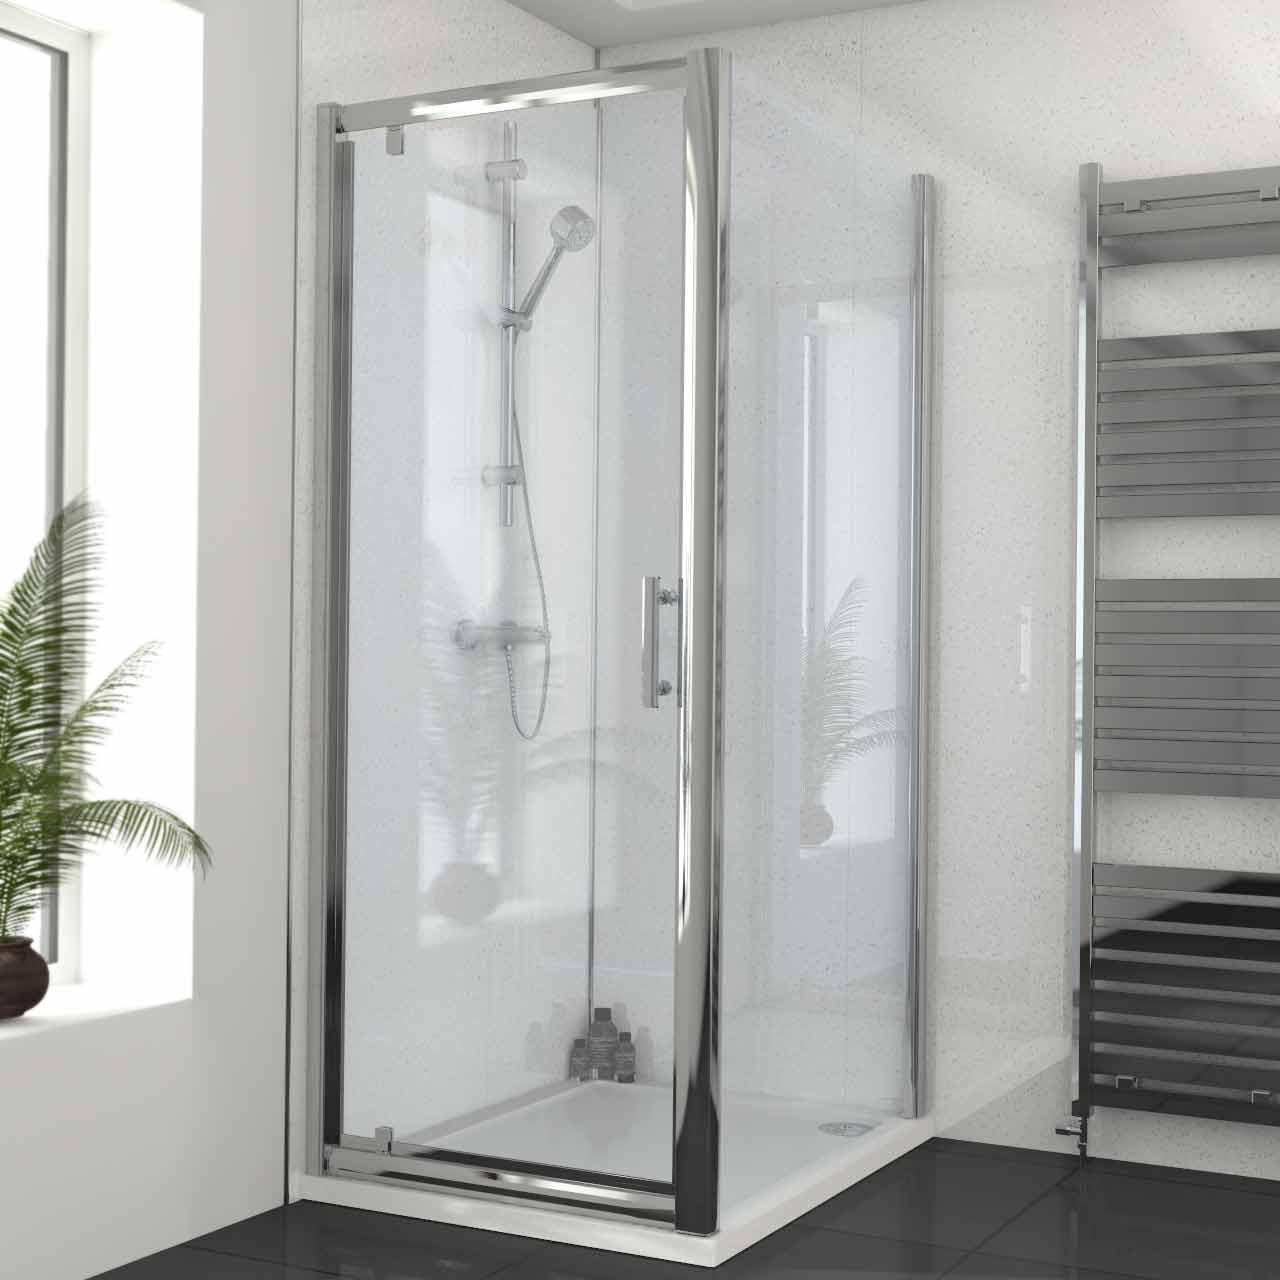 Series 6 800mm X 1000mm Pivot Door Shower Enclosure